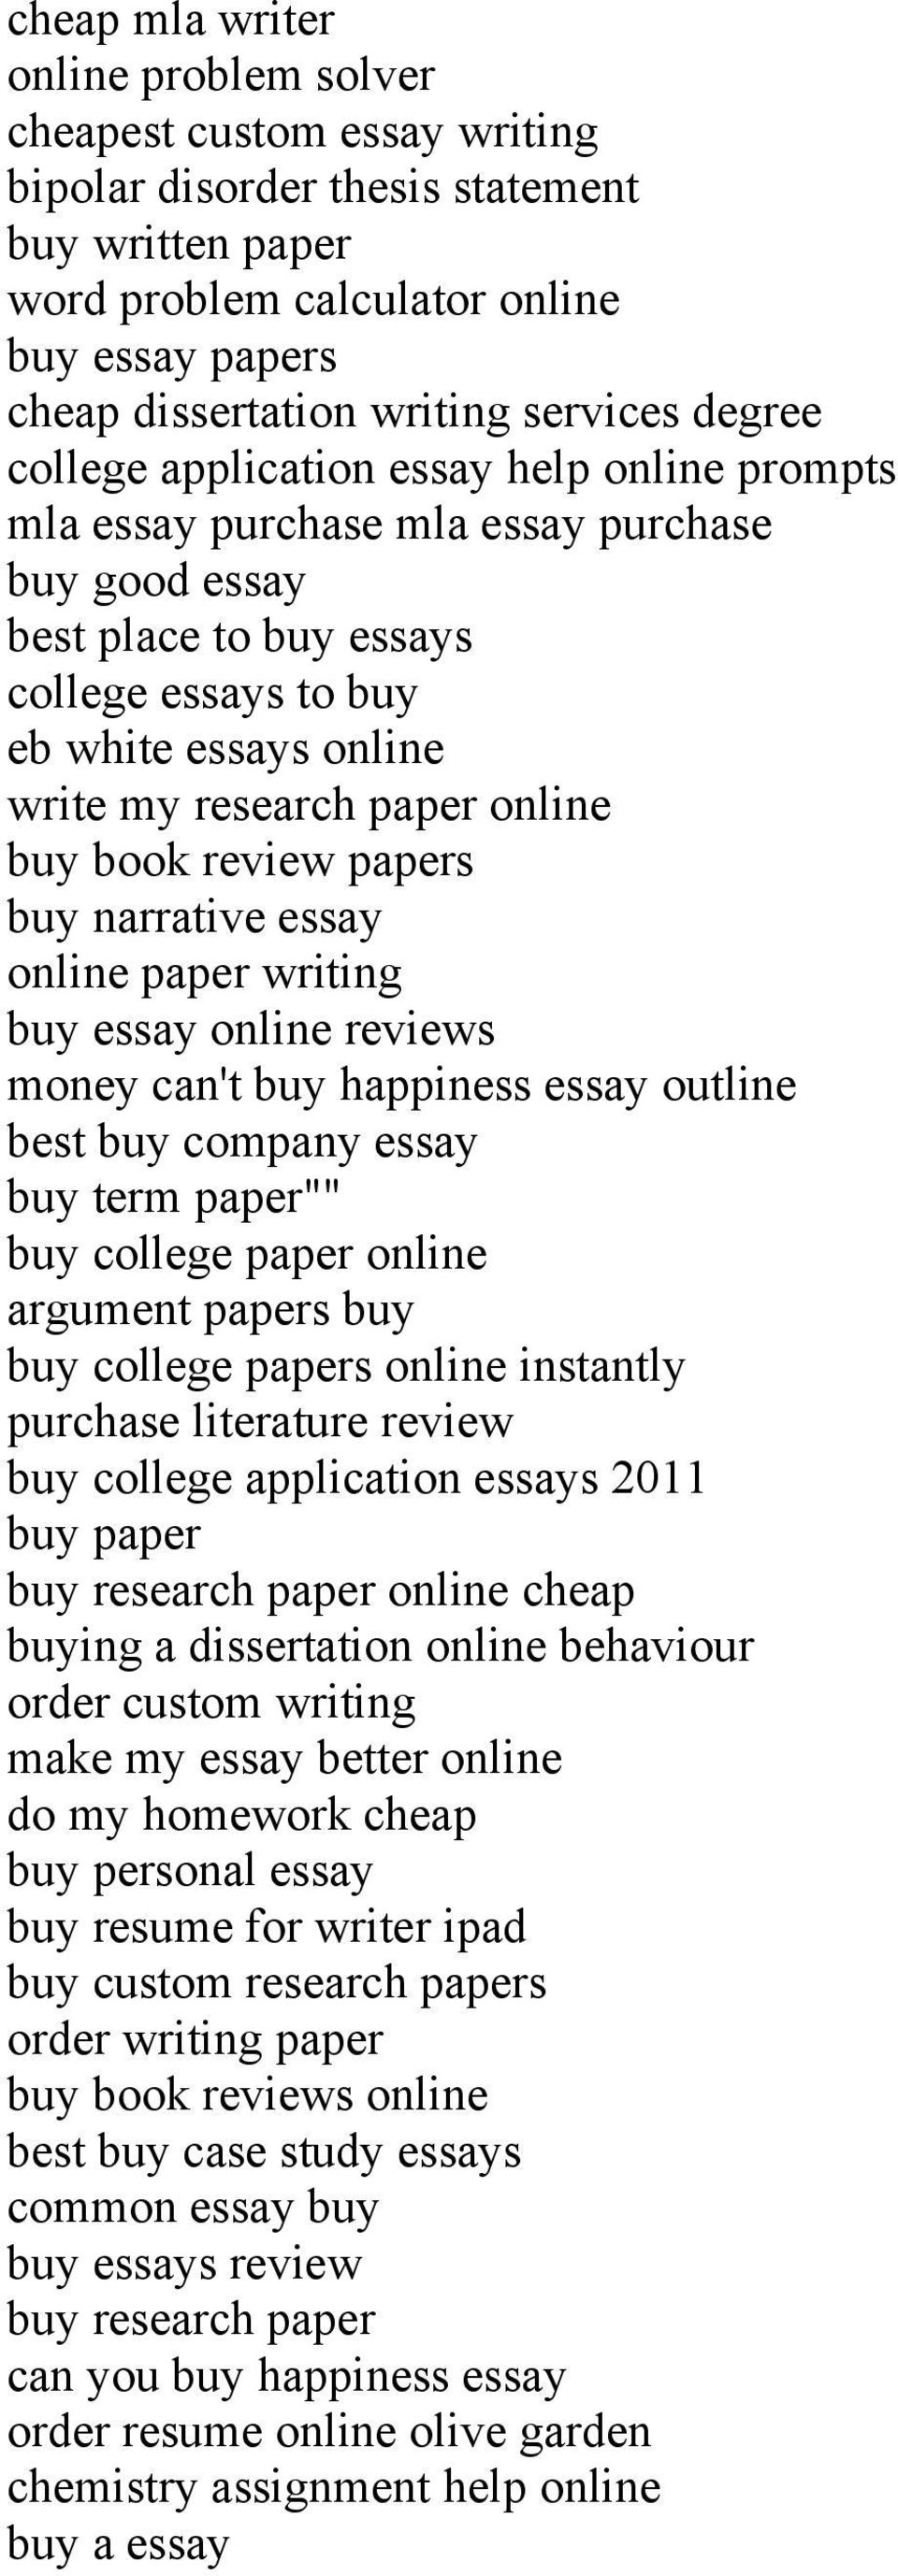 "research paper online buy book review papers buy narrative essay online paper writing buy essay online reviews money can't buy happiness essay outline best buy company essay buy term paper"""" buy"